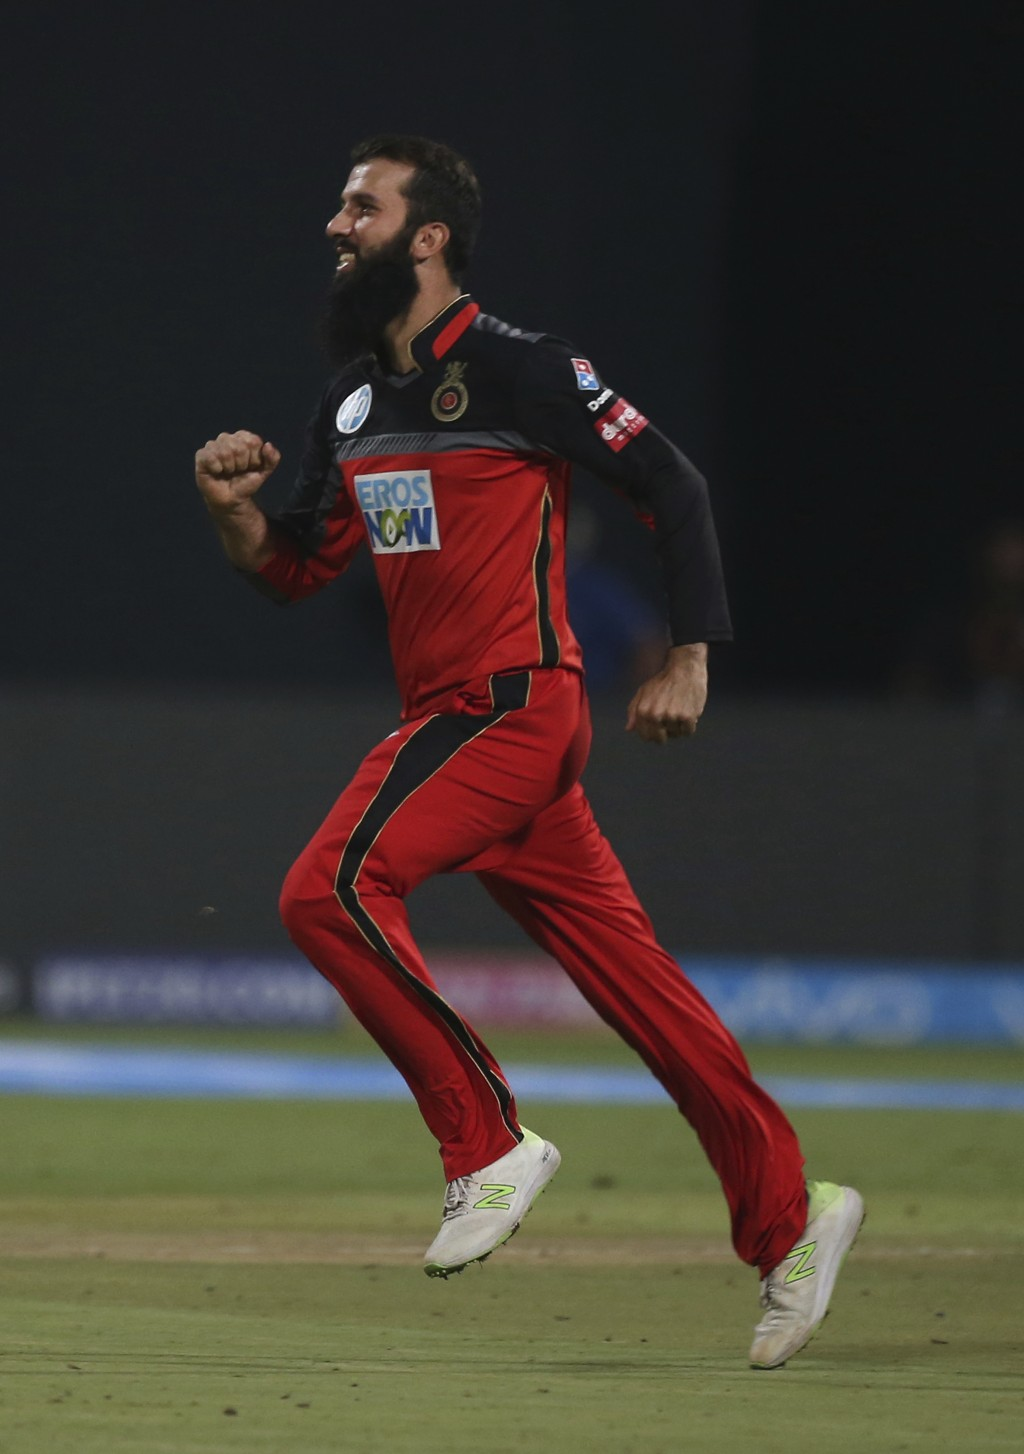 Royal Challengers Bangalore's Moeen Ali runs to celebrate the dismissal of Sunrisers Hyderabad batsman Alex Hales during the VIVO IPL Twenty20 cricket